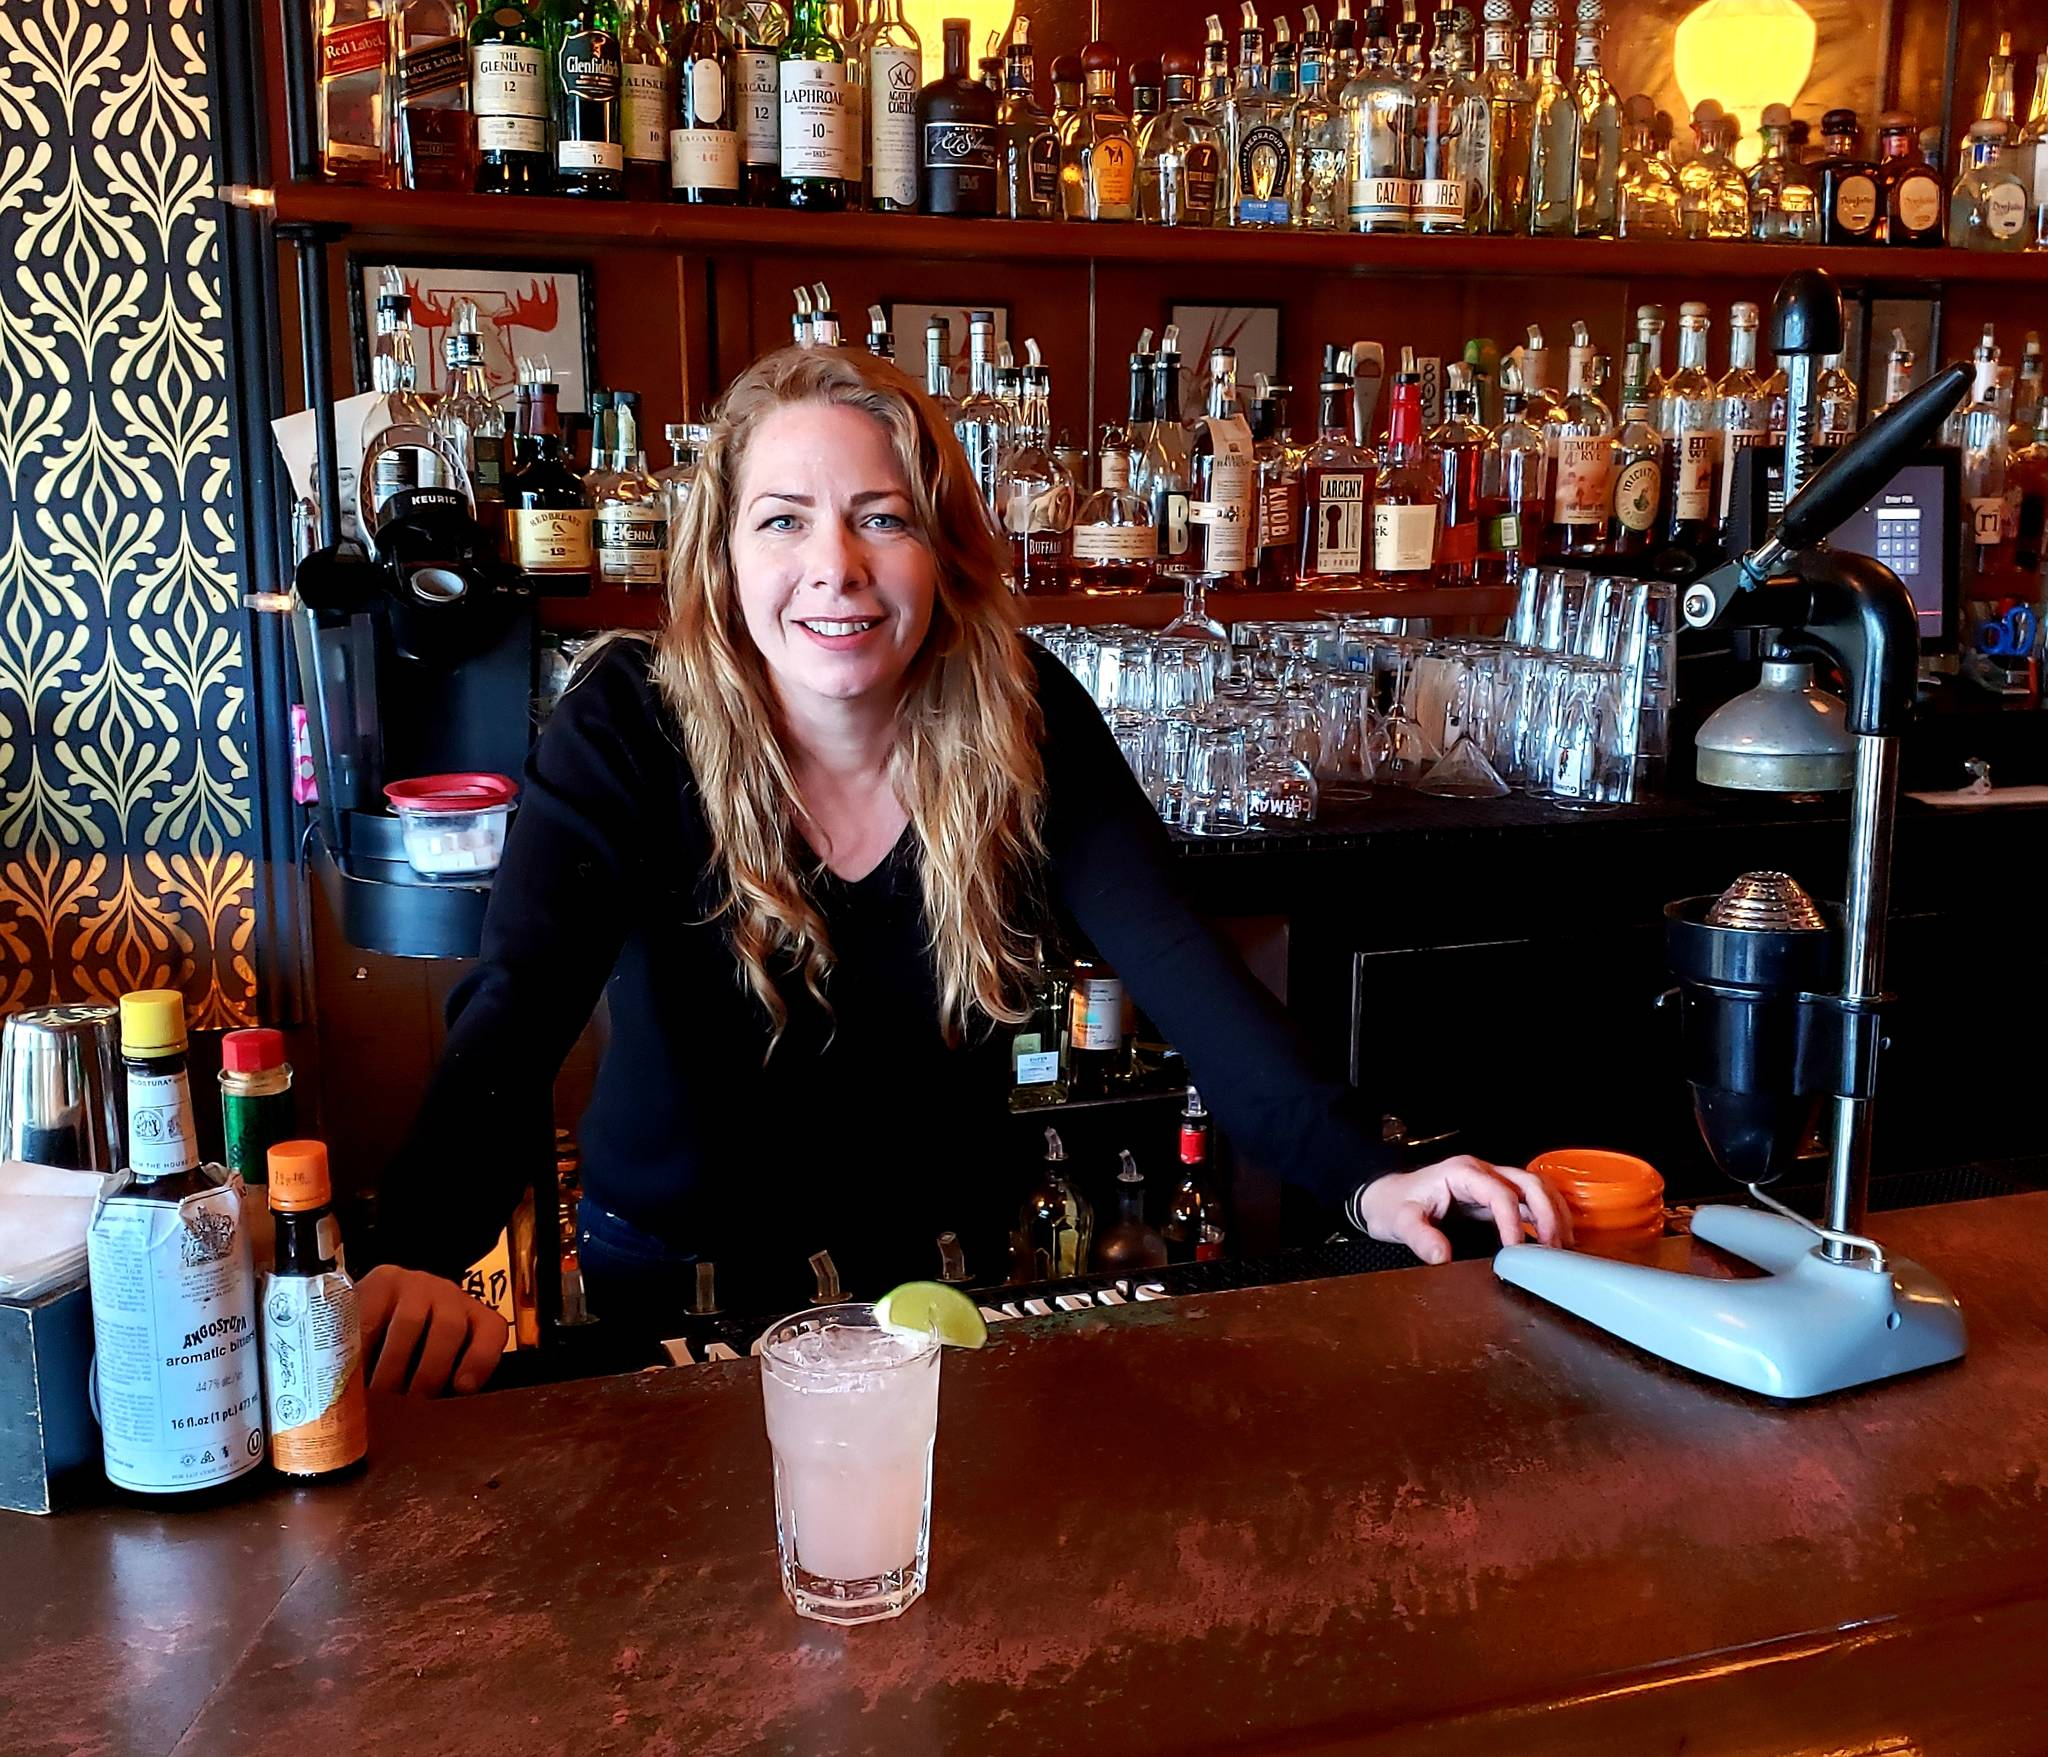 Fireside Bar owner Lisa Merrall said the key to success is remembering that customers aren't just there to drink.